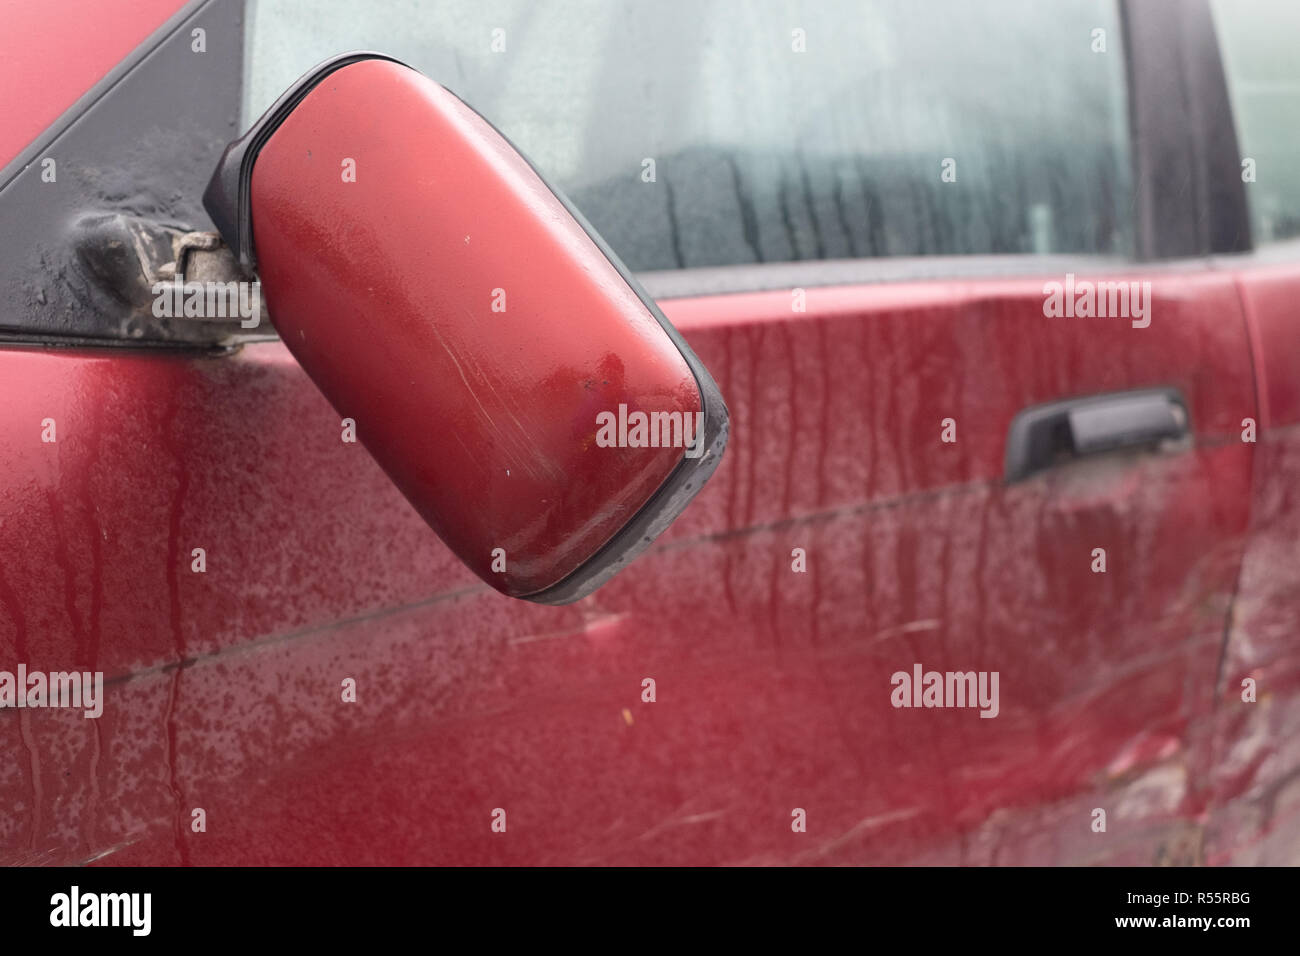 right car mirror broken after accident, subject to insurance claim - Stock Image